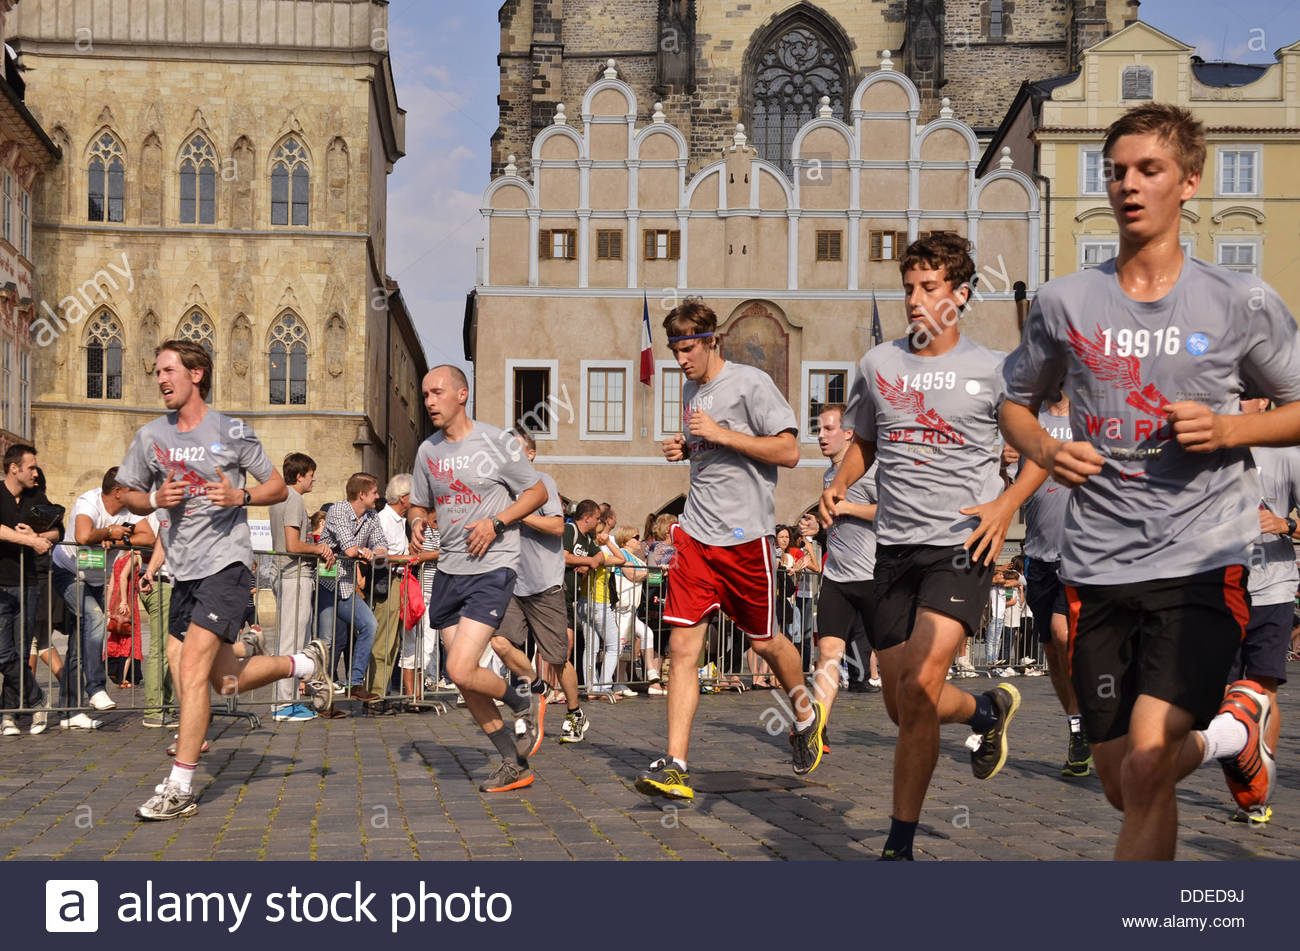 Contestants running through Old Town Square at ''We Run Prague'' annual race - Stock Image